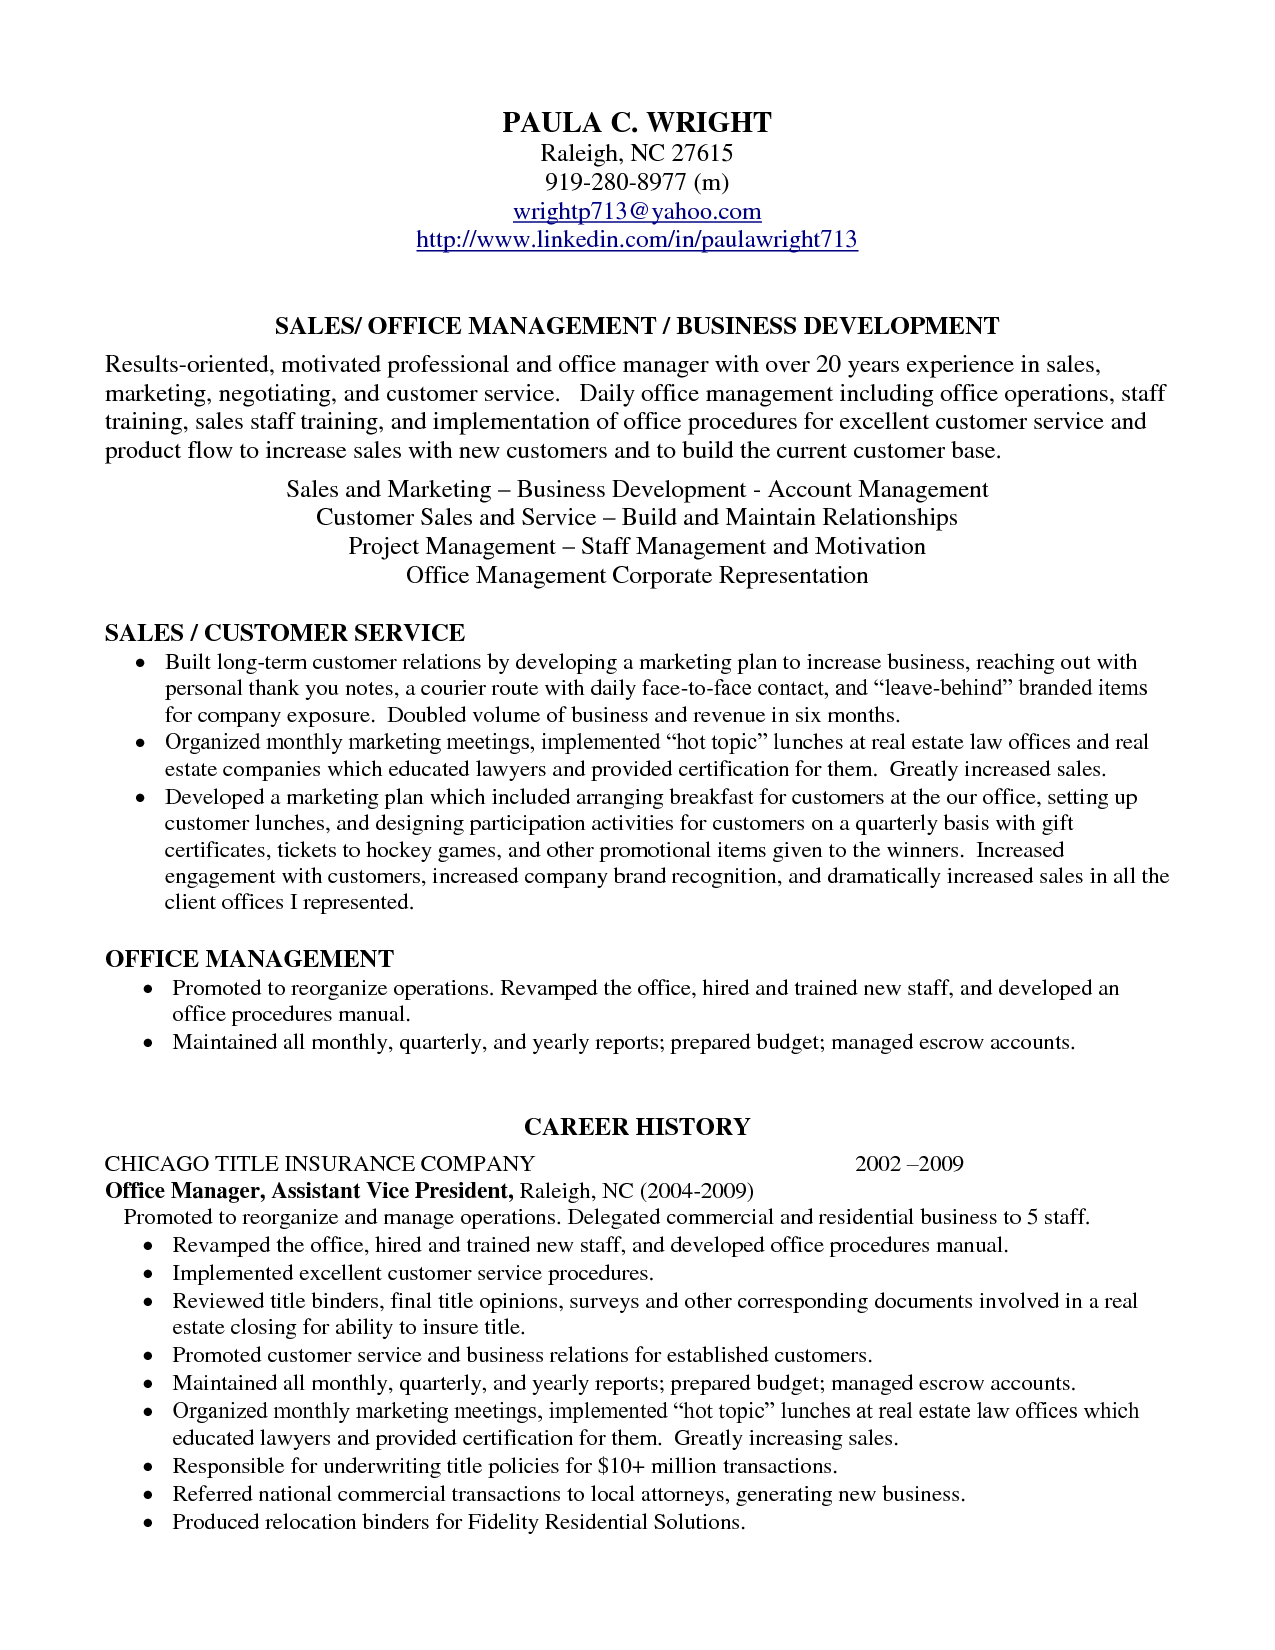 Professional Marketing Resume Sample Manager  Resume It Professional